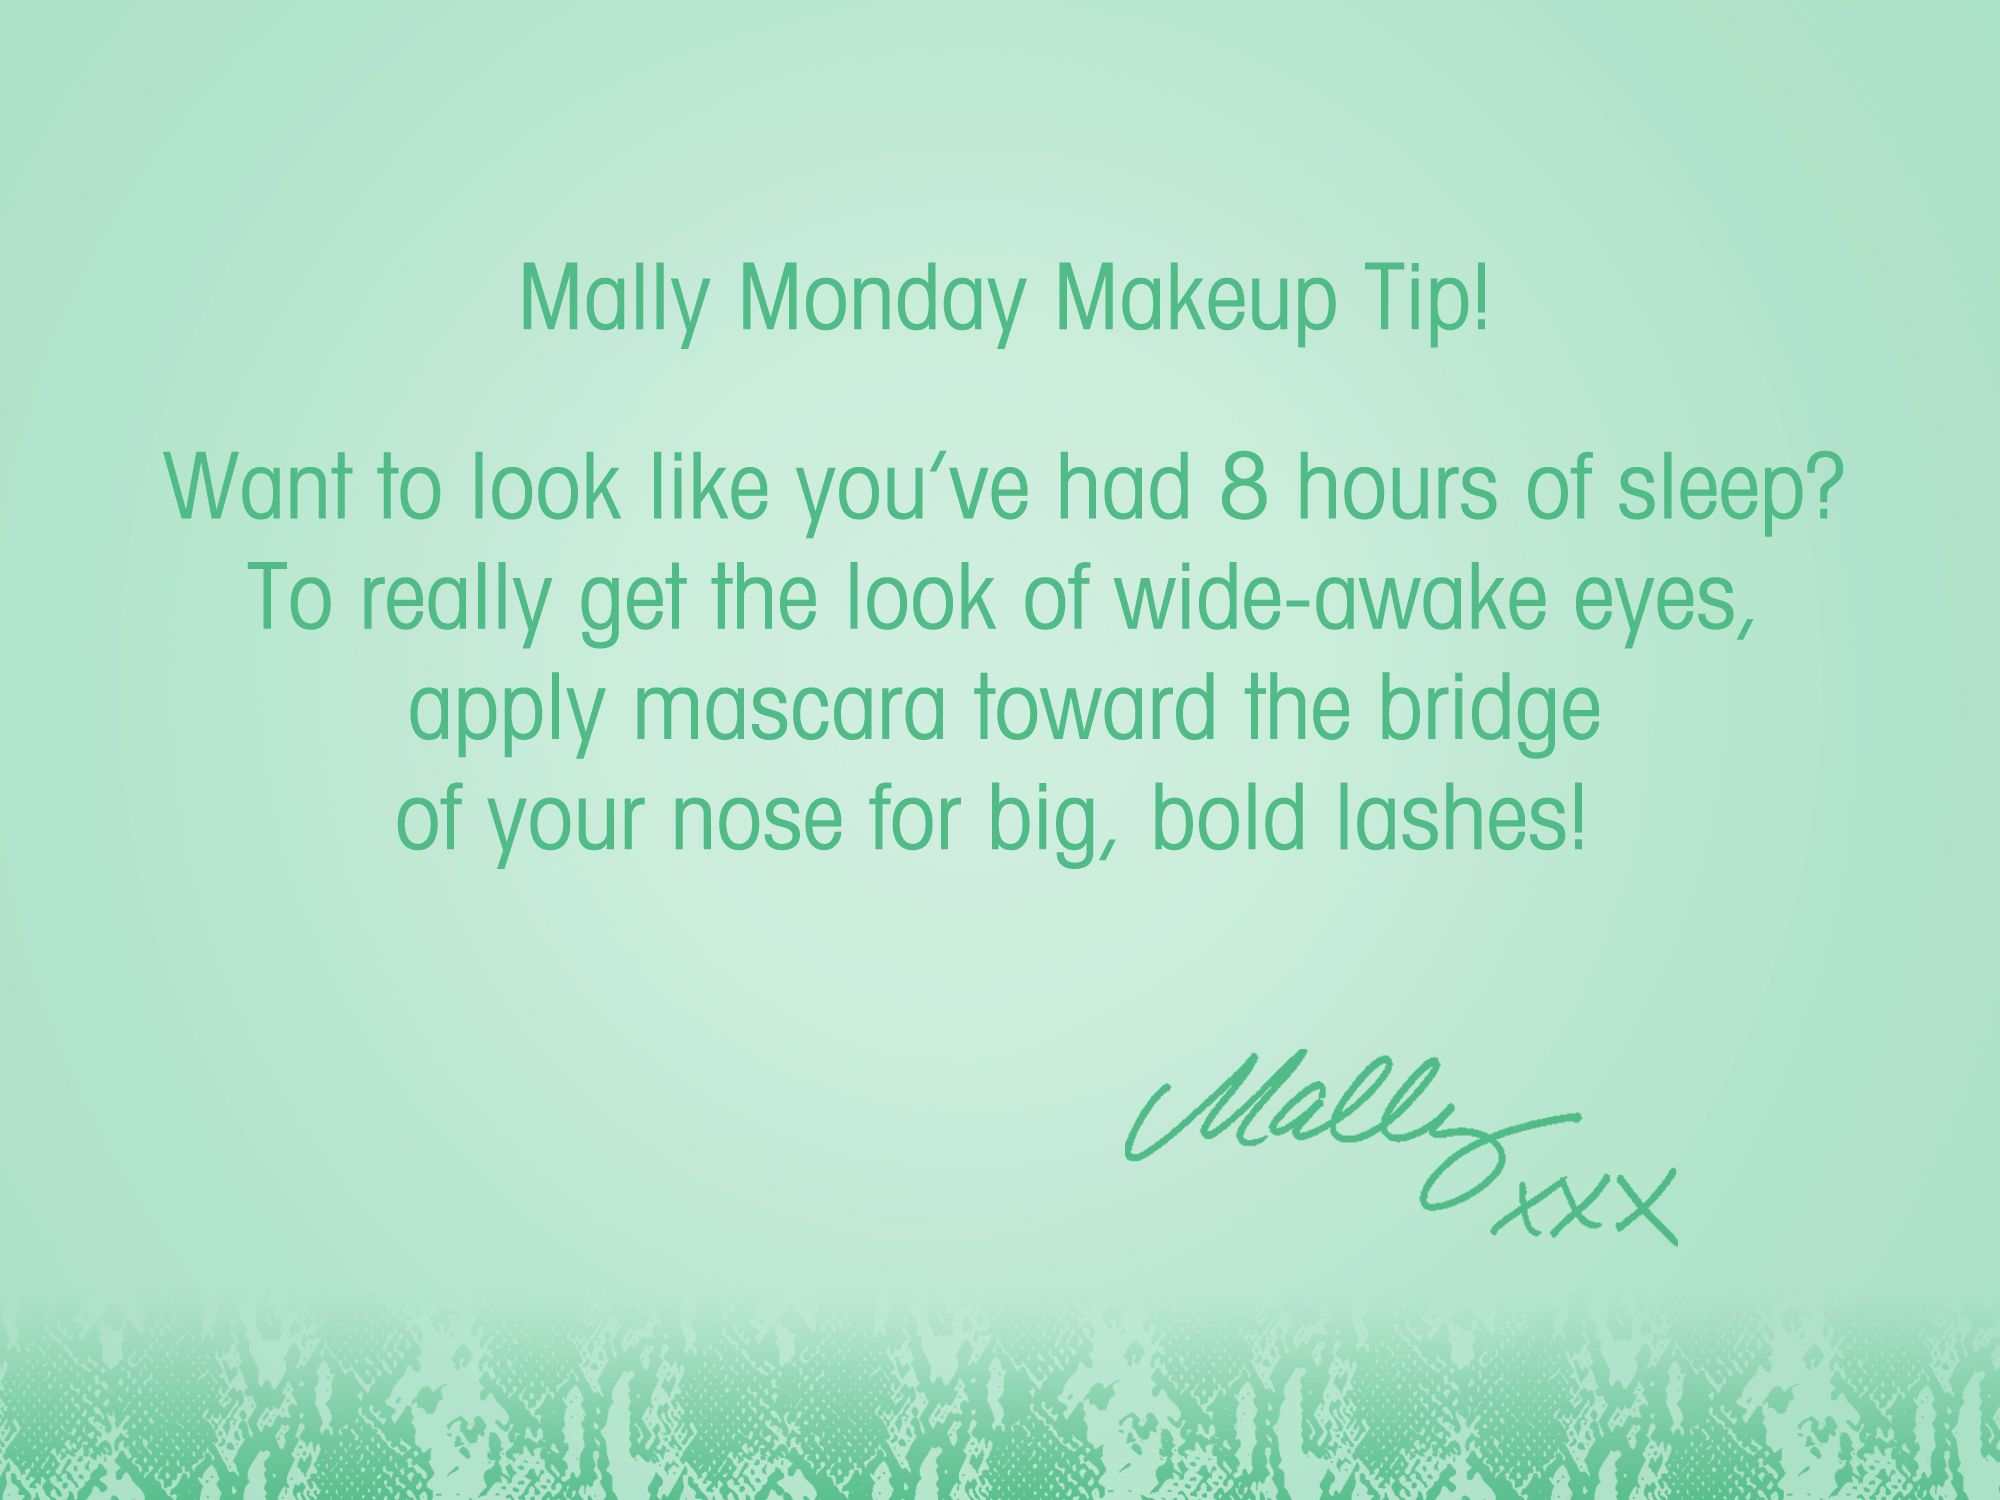 For the best, biggest lash look, try this week's #MallyMonday tip! #Mascara